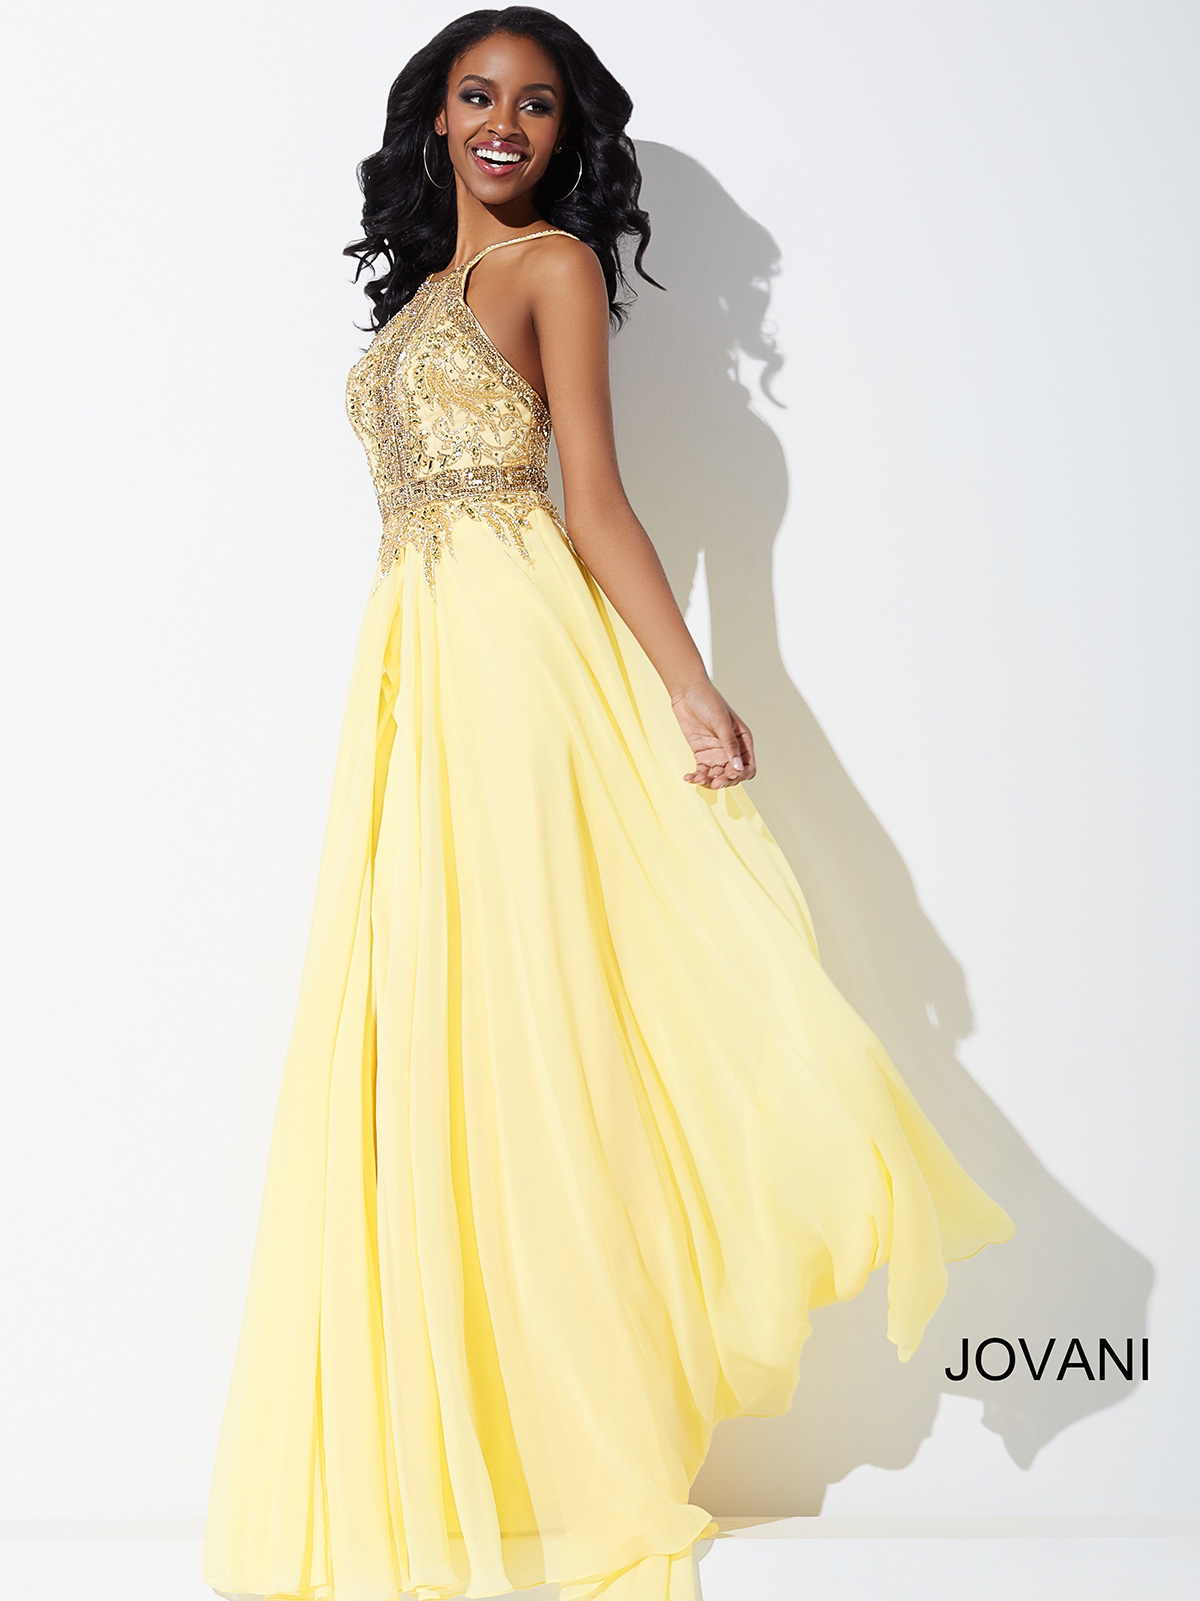 Jovani 33851 A-Line Chiffon Pageant Dress|PageantDesigns.com